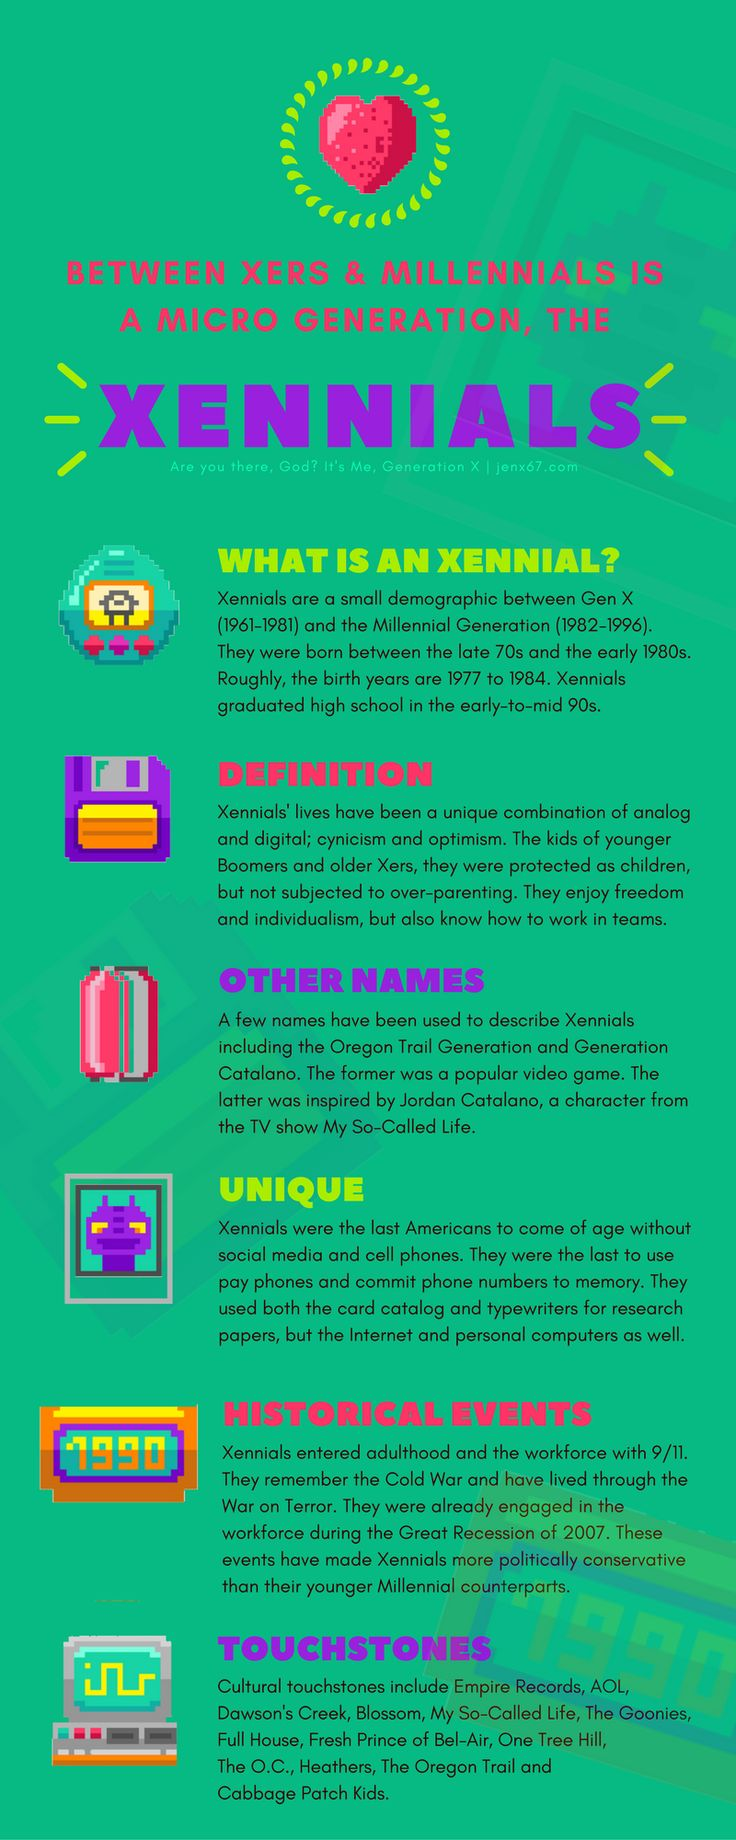 The Xennials are a micro-generation between Generation X and the Millennial generation. X + Millennial = Xennials.